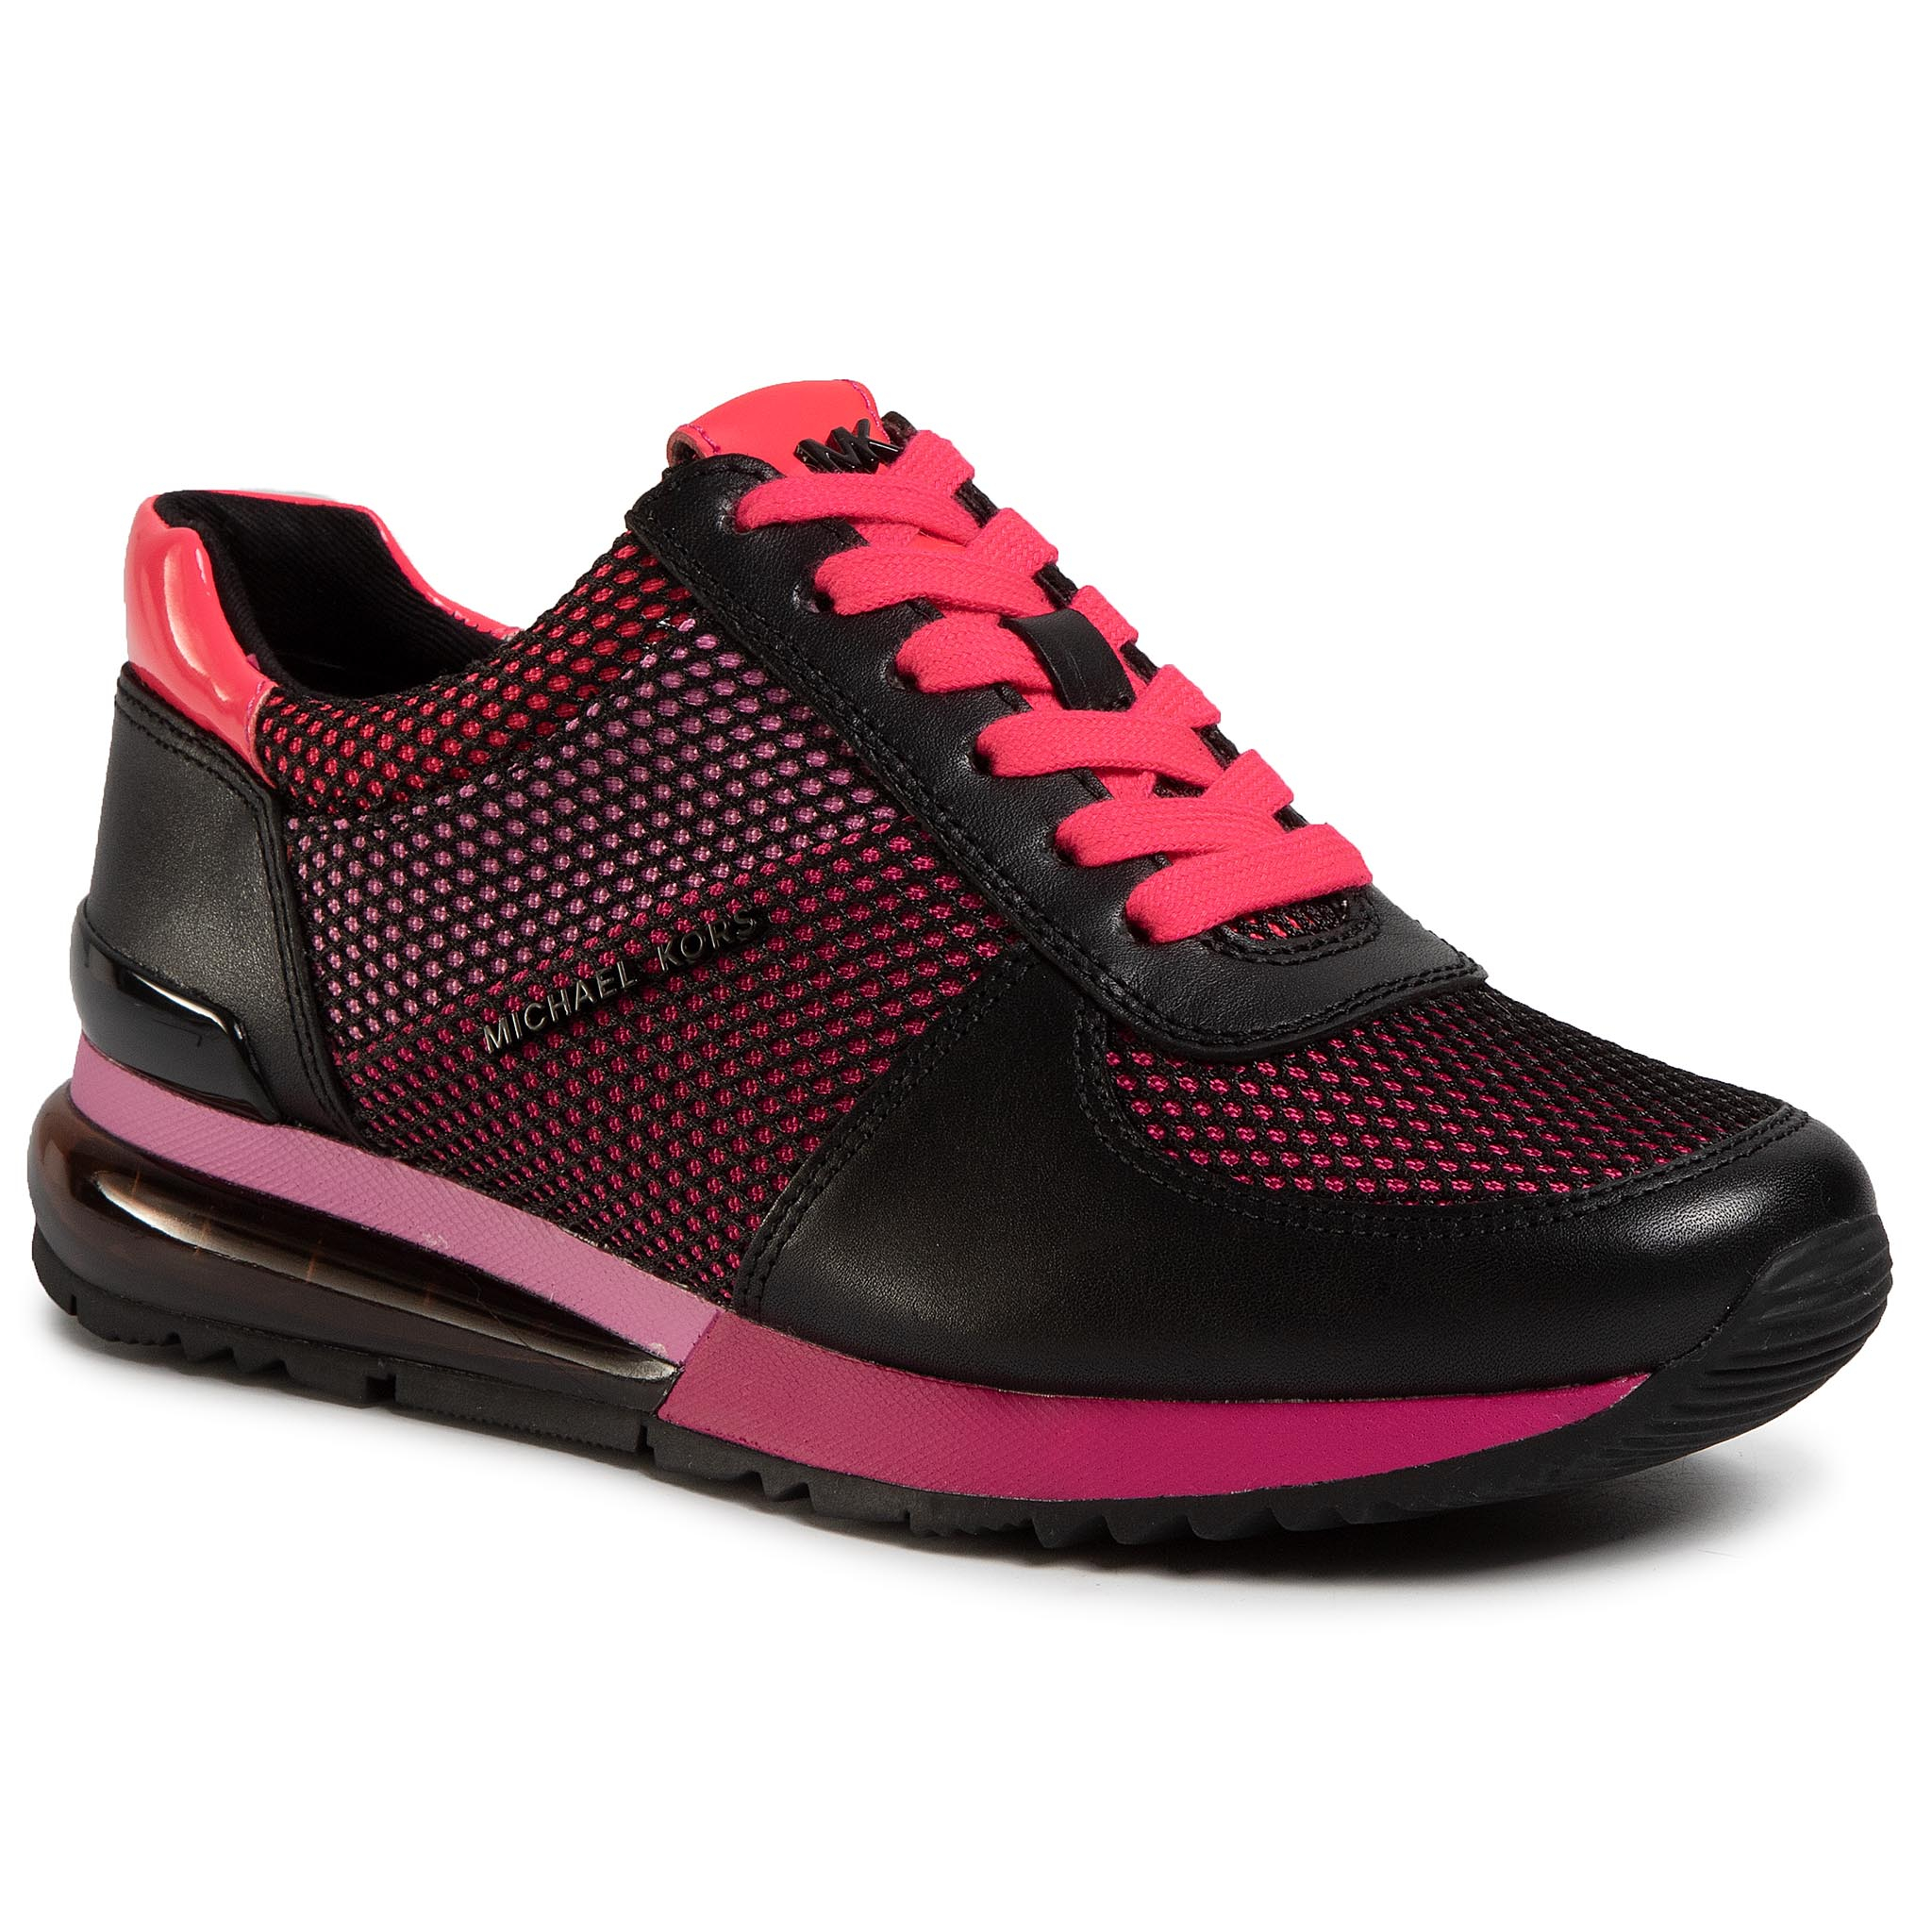 Sneakersy MICHAEL MICHAEL KORS - Allie Trainer Extreme 43S0ALFS3D  Fuchsia